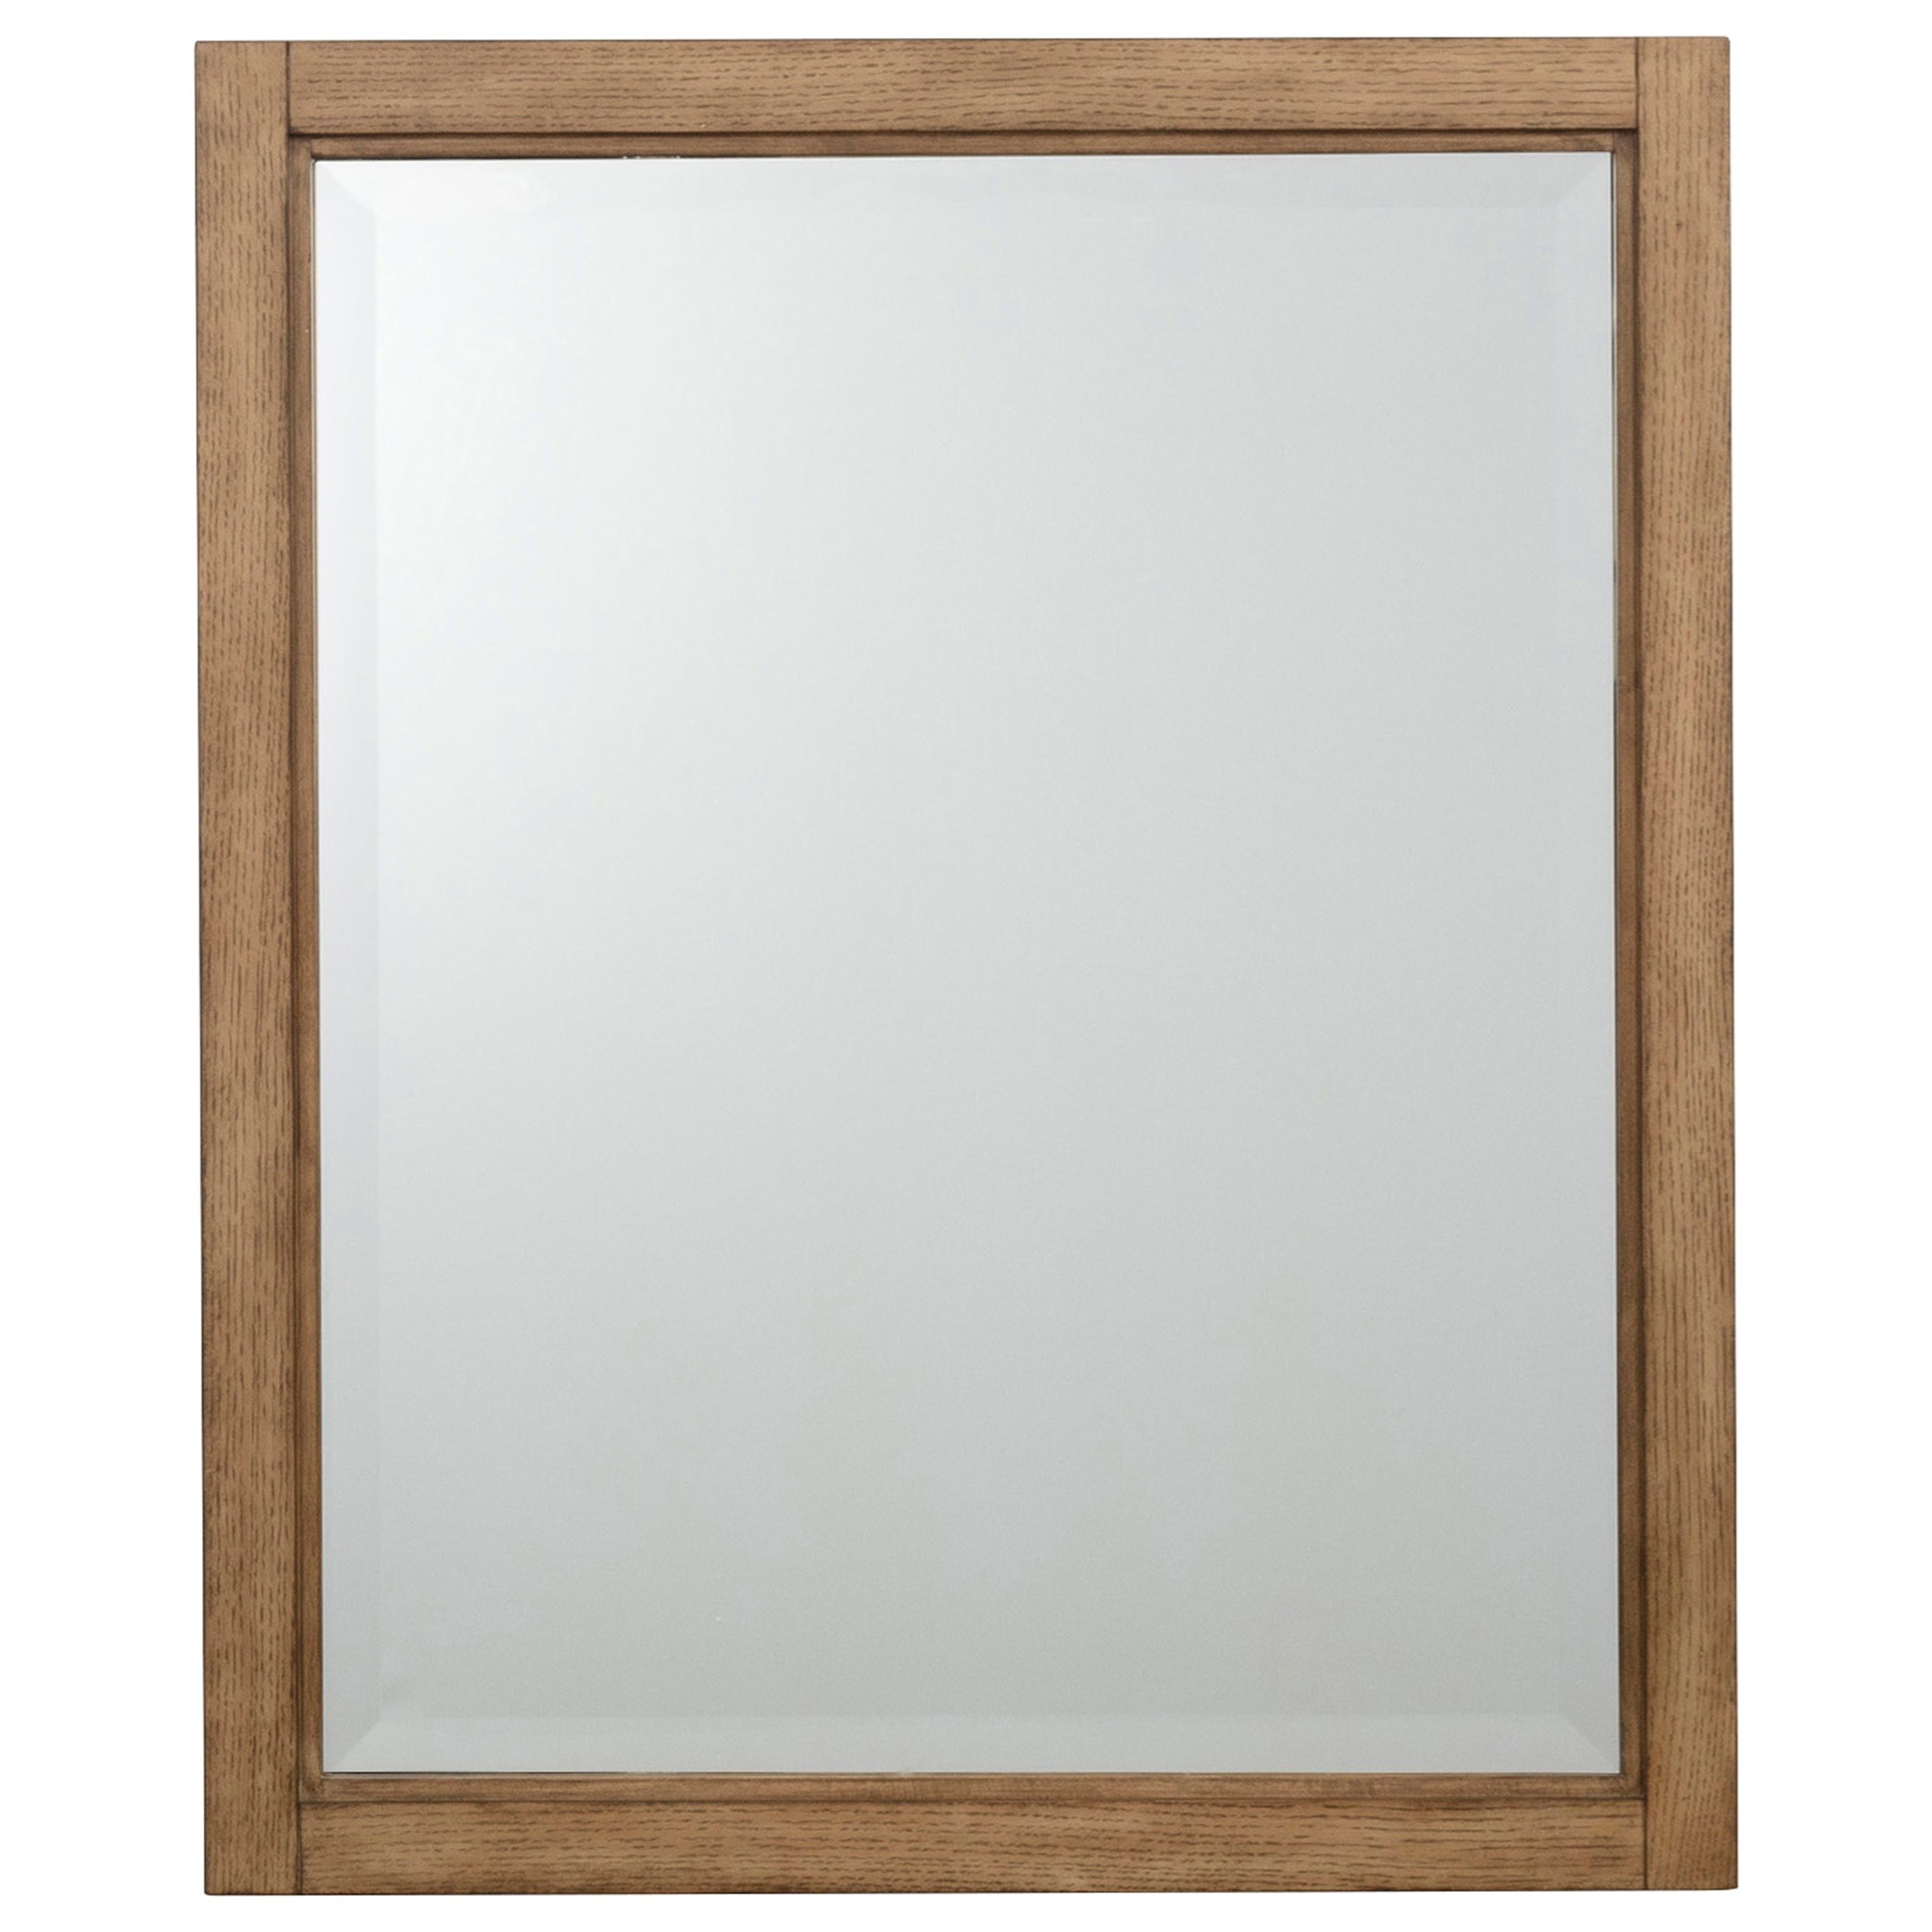 Big Sur Mirror by Homestyles at Northeast Factory Direct